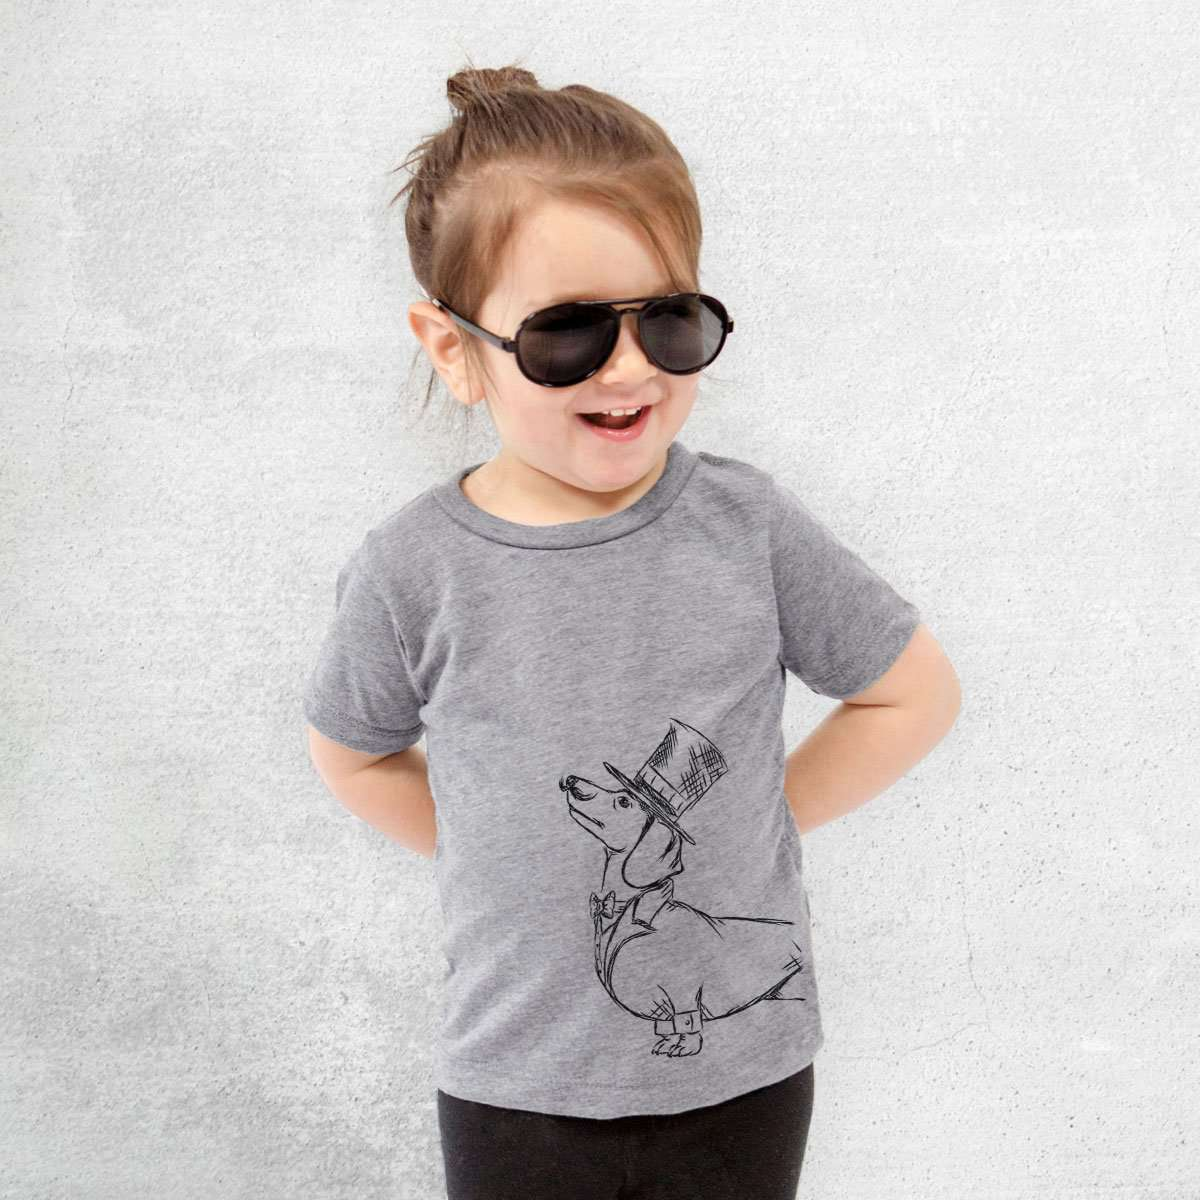 George the Dachshund - Kids/Youth/Toddler Shirt